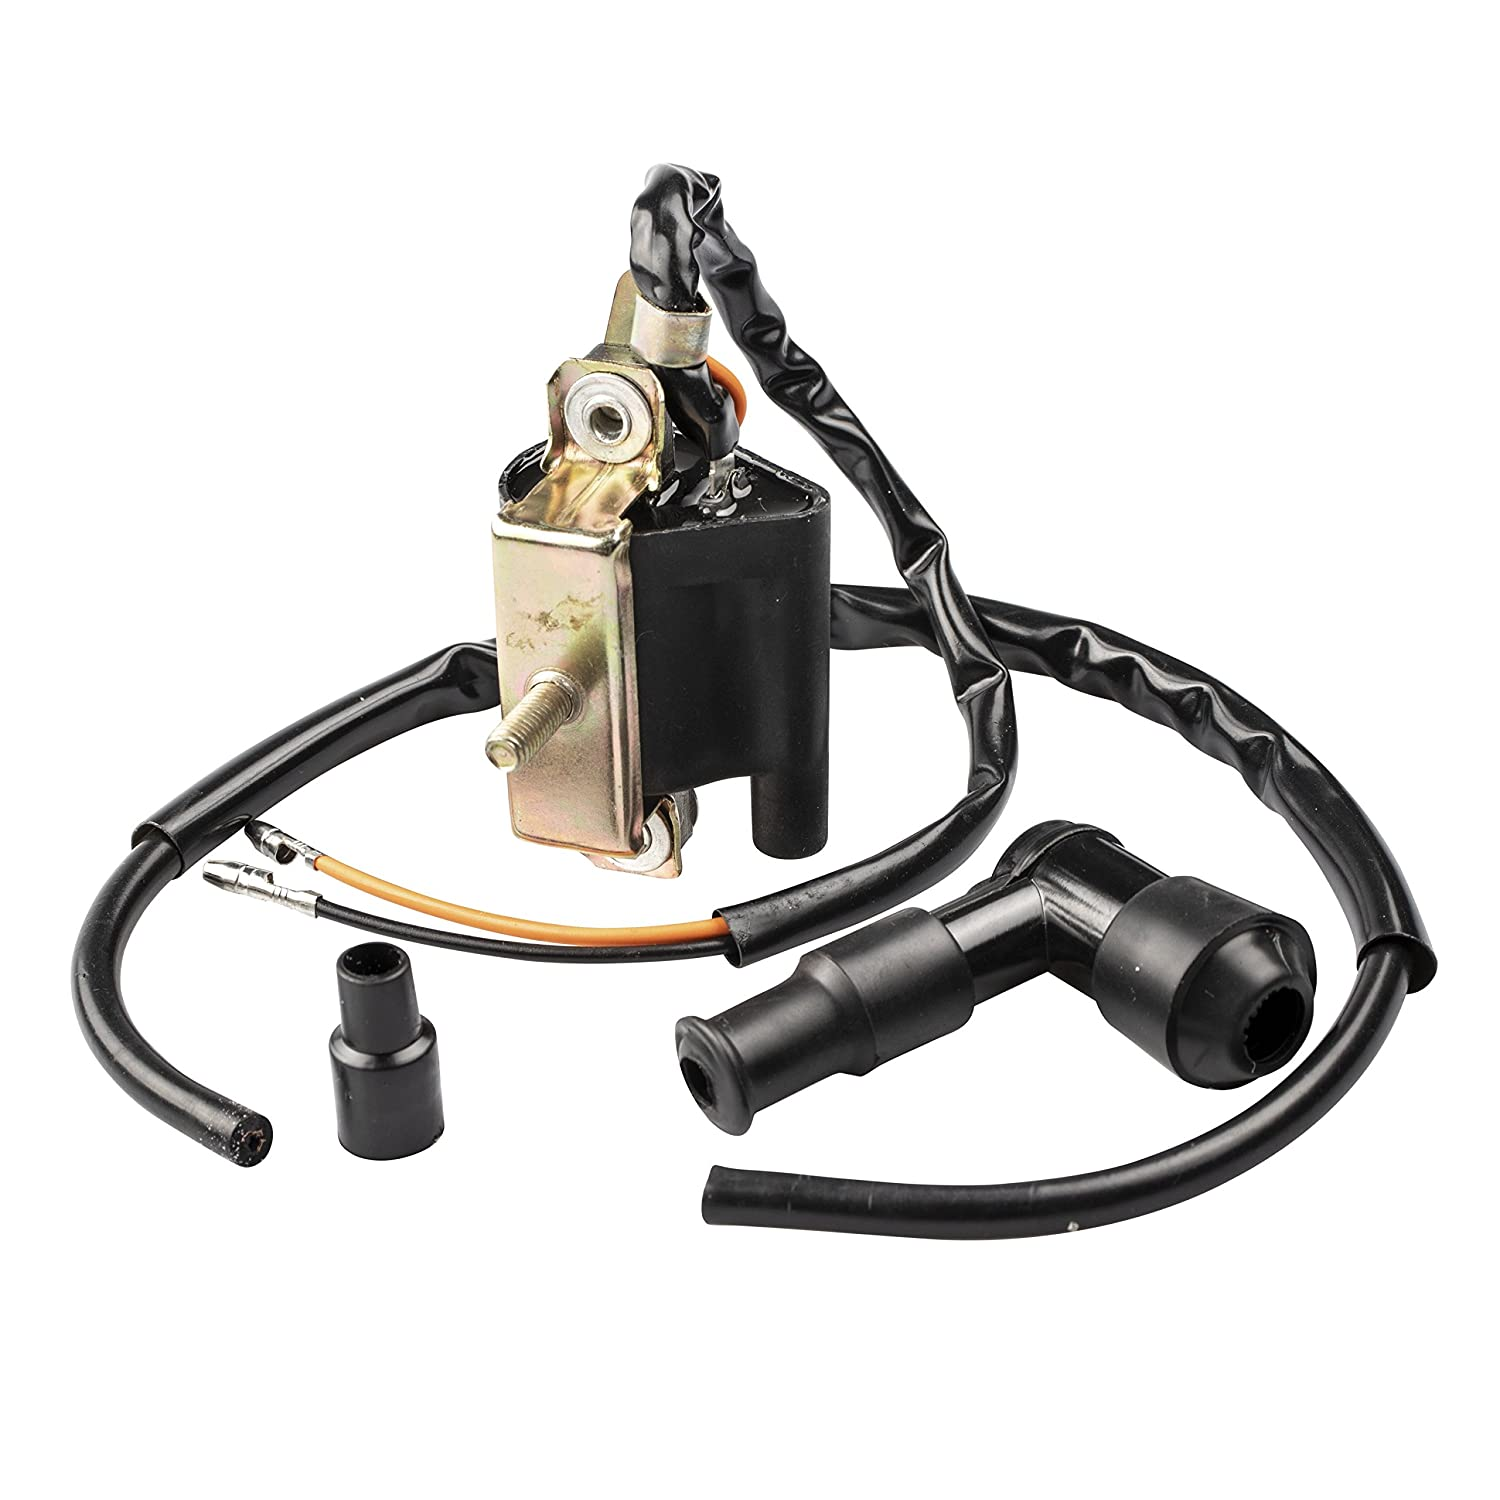 "Amazon.com: (2WC) Ignition Coil 6V for Honda Z50 CT70 C70 CL70 XL70 SL70  Moped Scooter 18"" Length: Automotive"